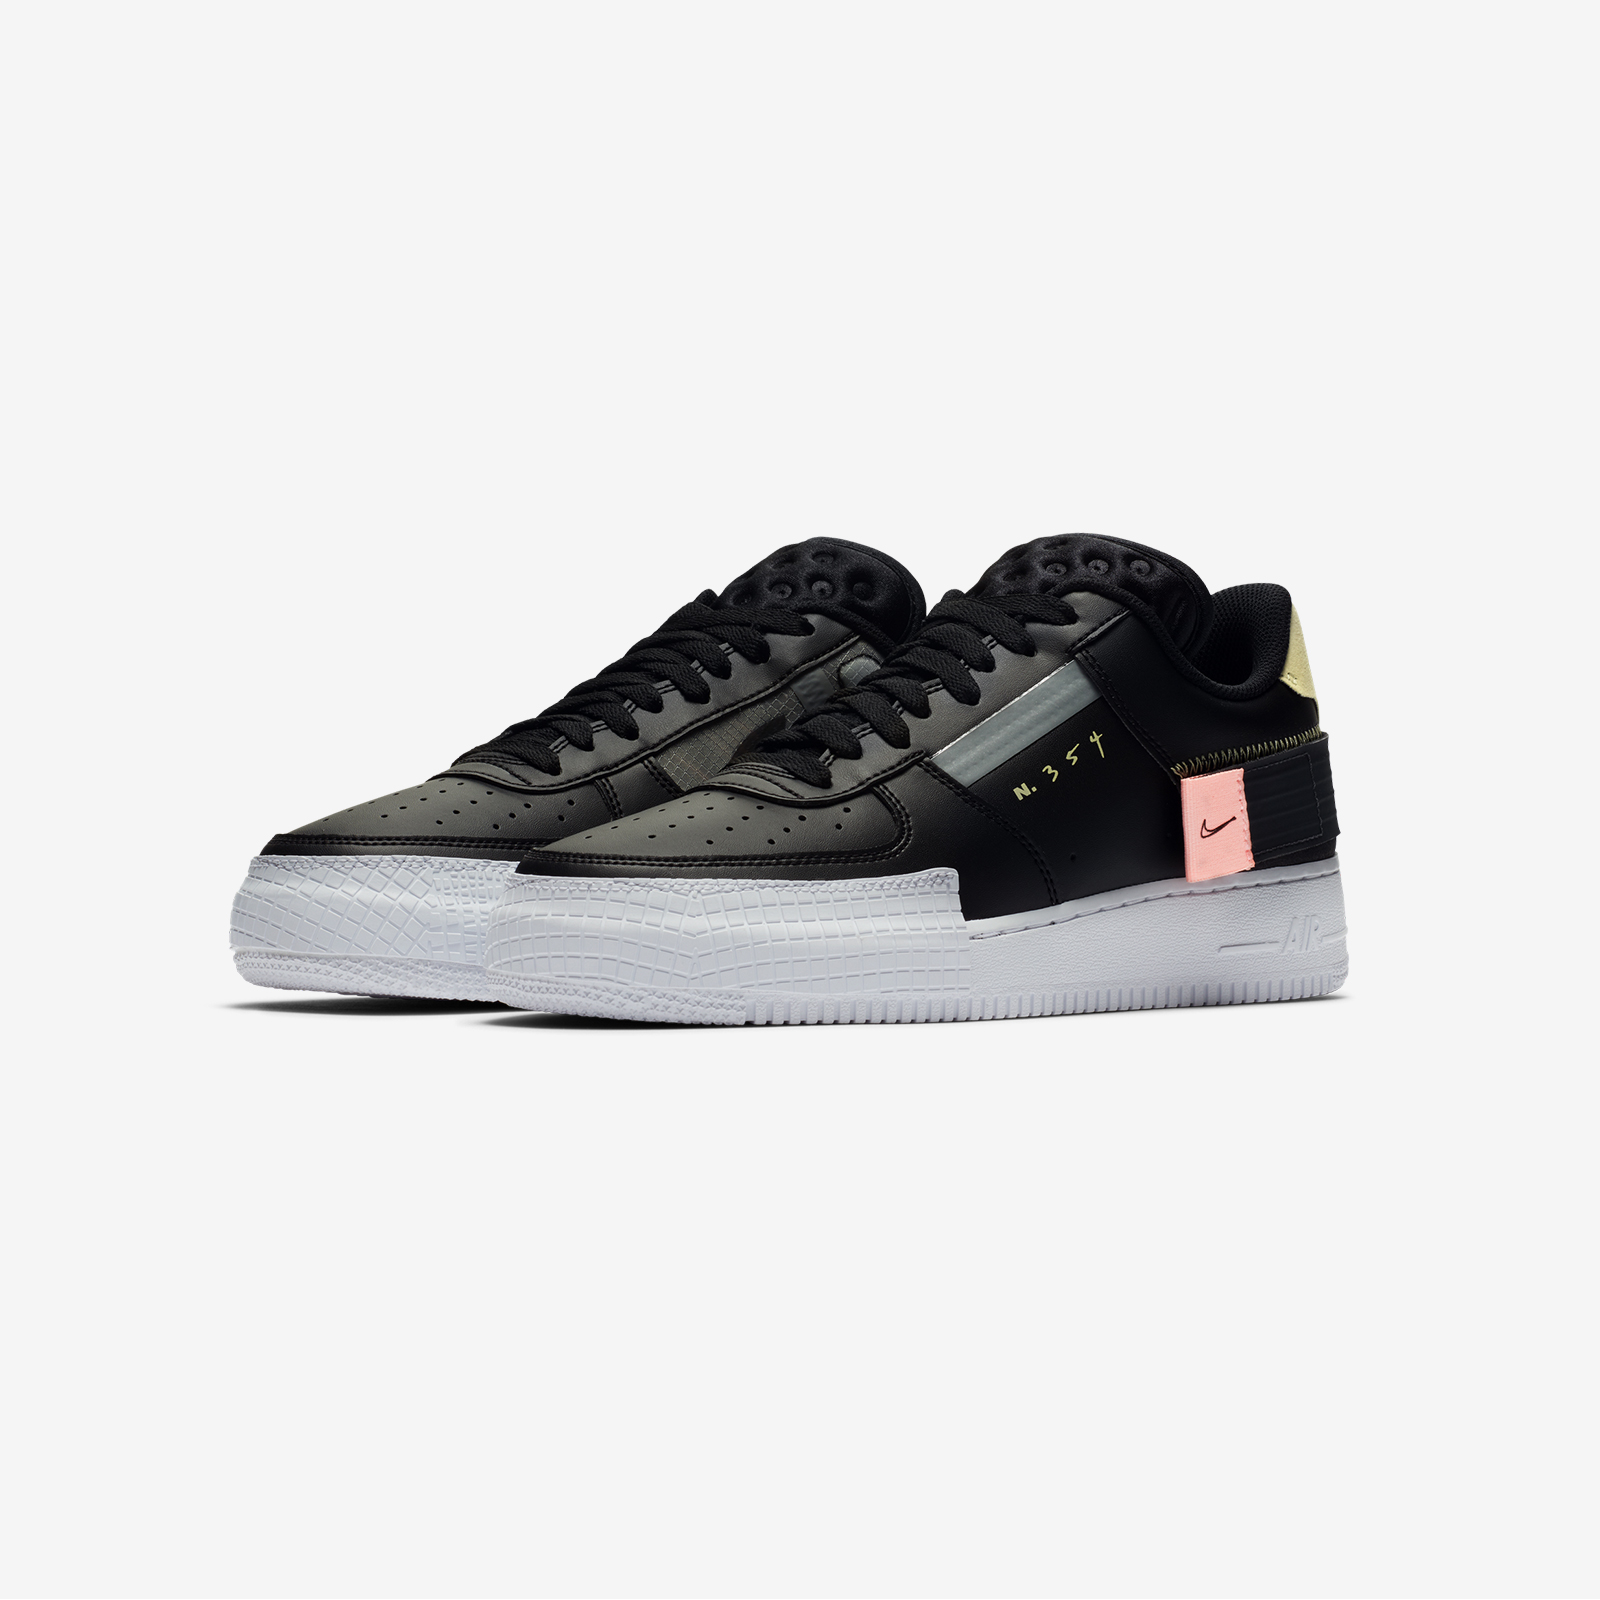 CI0054 001 Nike Air Force 1 Type Black 3